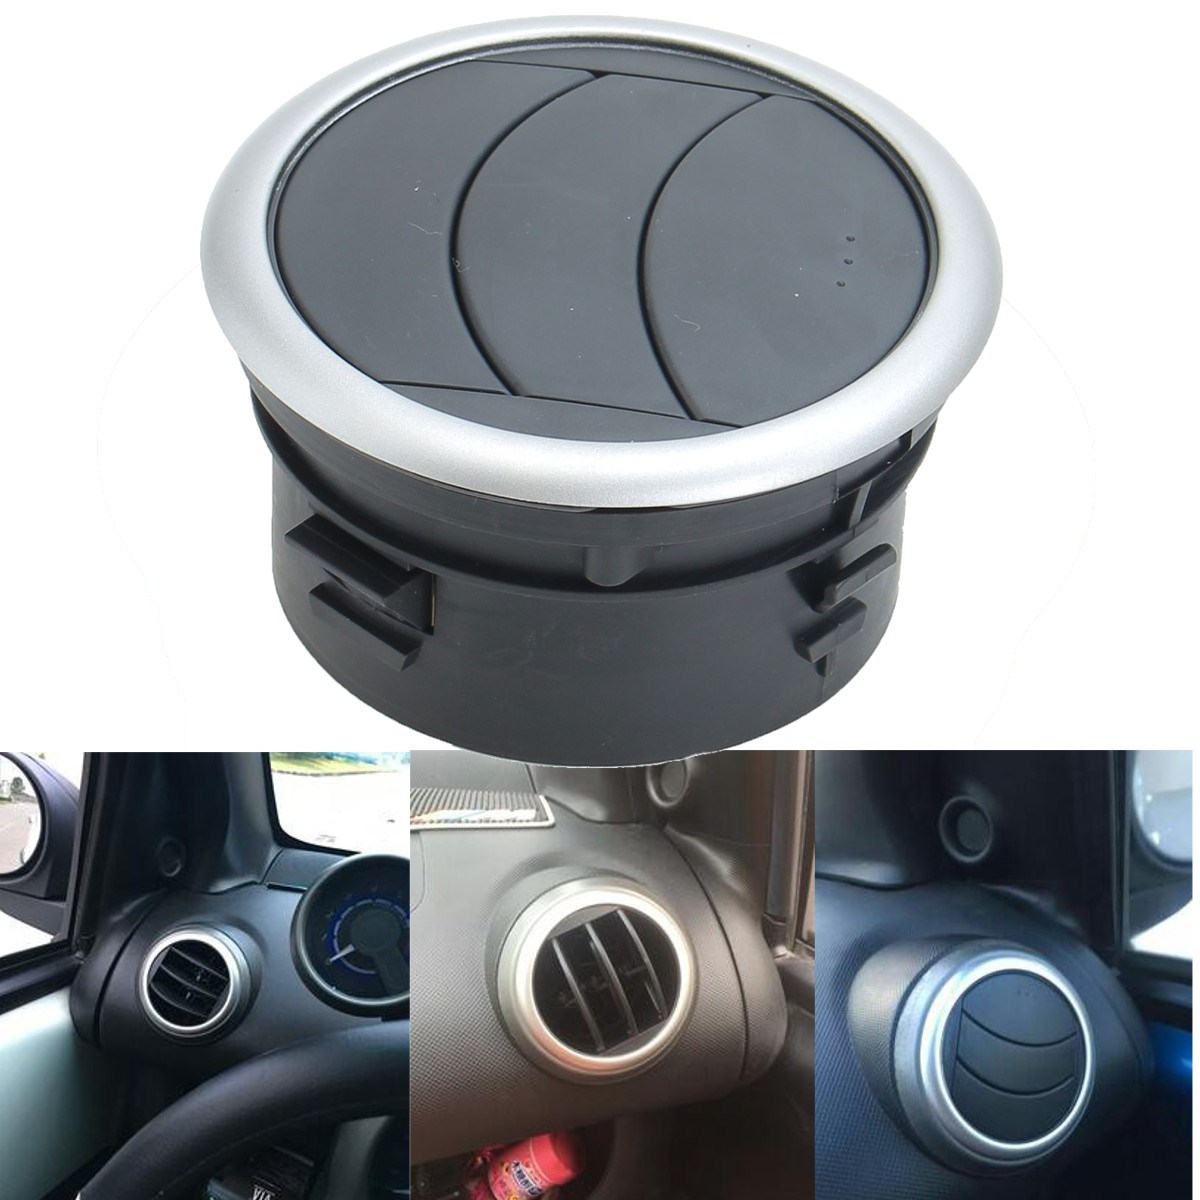 ABS Plastic Air Conditioning Vent Deflector Outlet Side Dashboard For Suzuki /SX4 /Swift 2005-2013